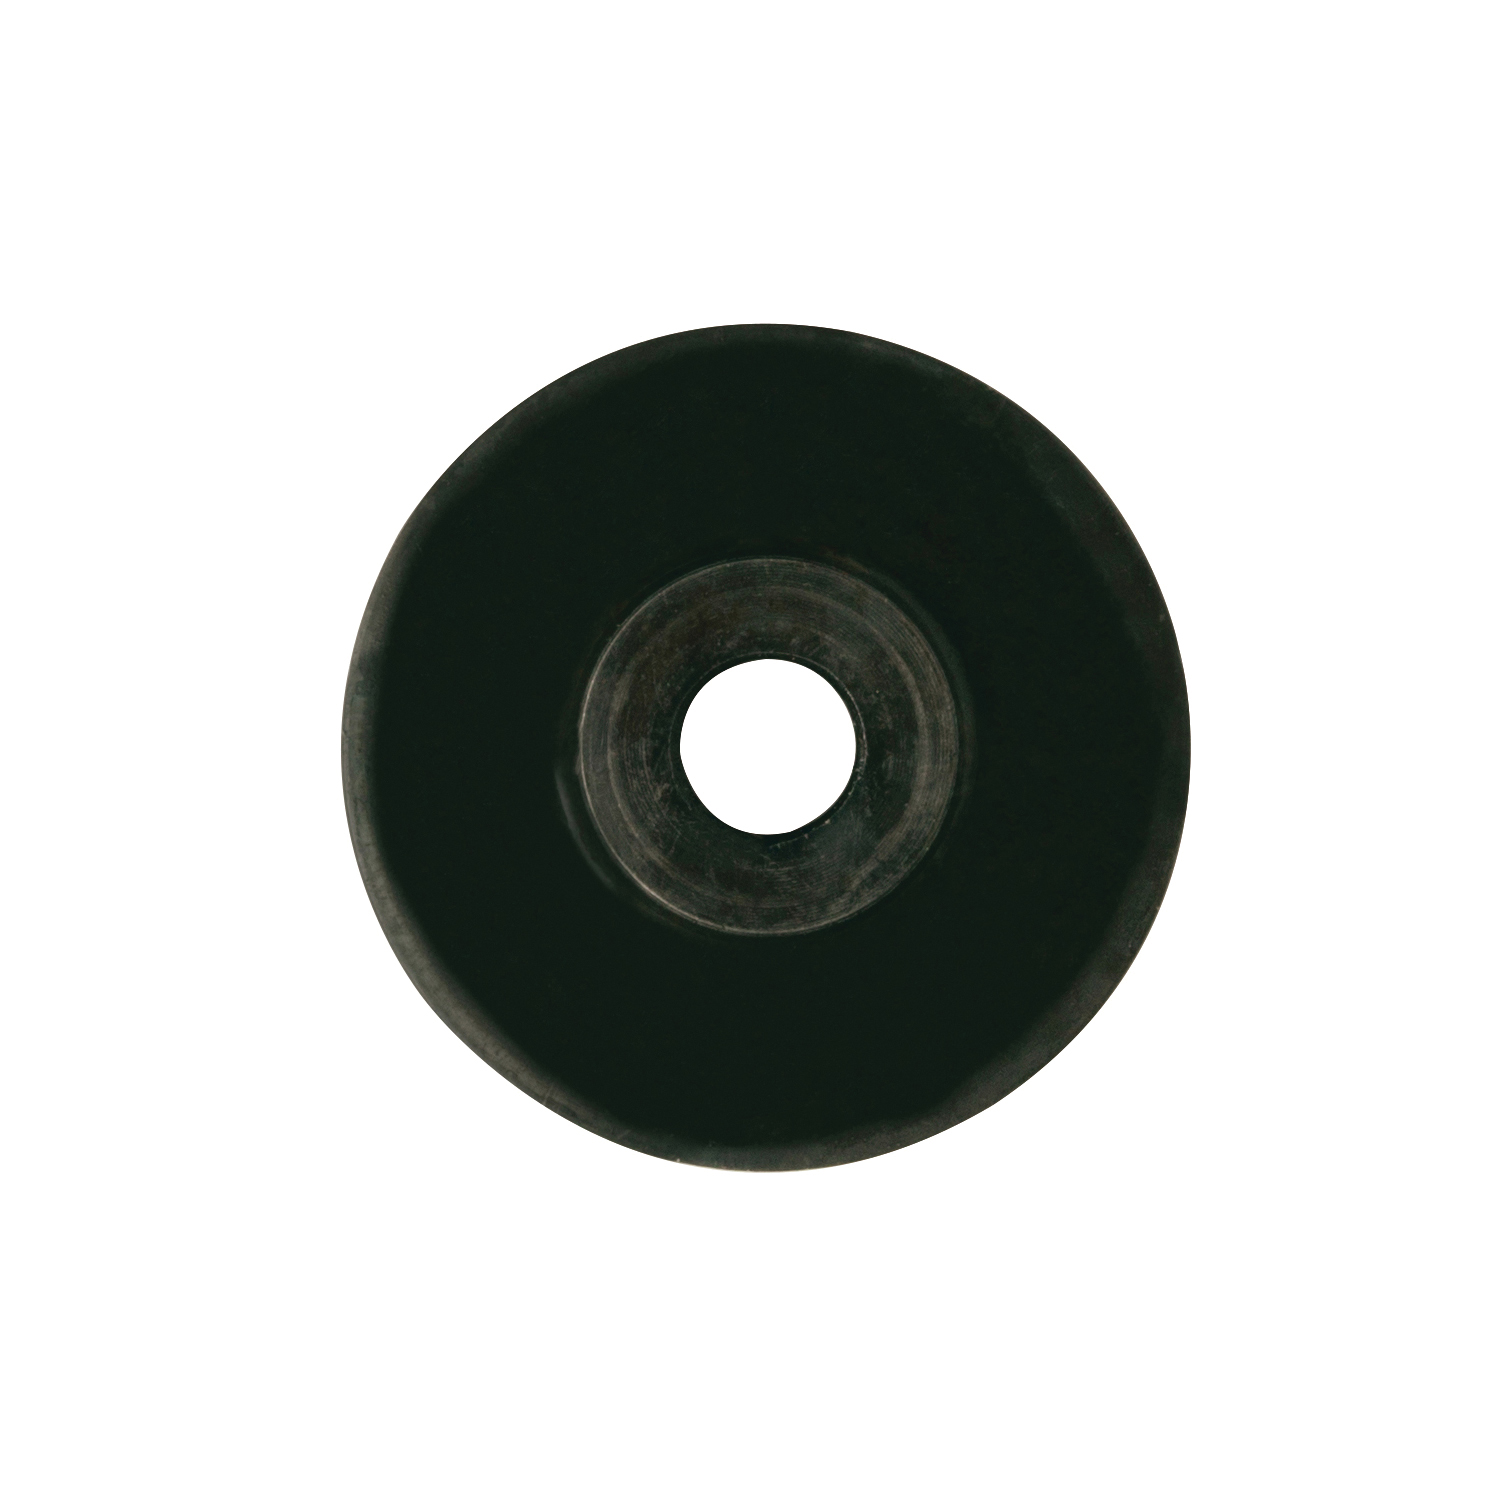 Reed 04180 Cutter Wheel, 0.275 in Blade Exposure, For Use With TC1Q, TC1.6Q, TC2Q, T10, T15 and T20 Tubing Cutter, Tool Steel